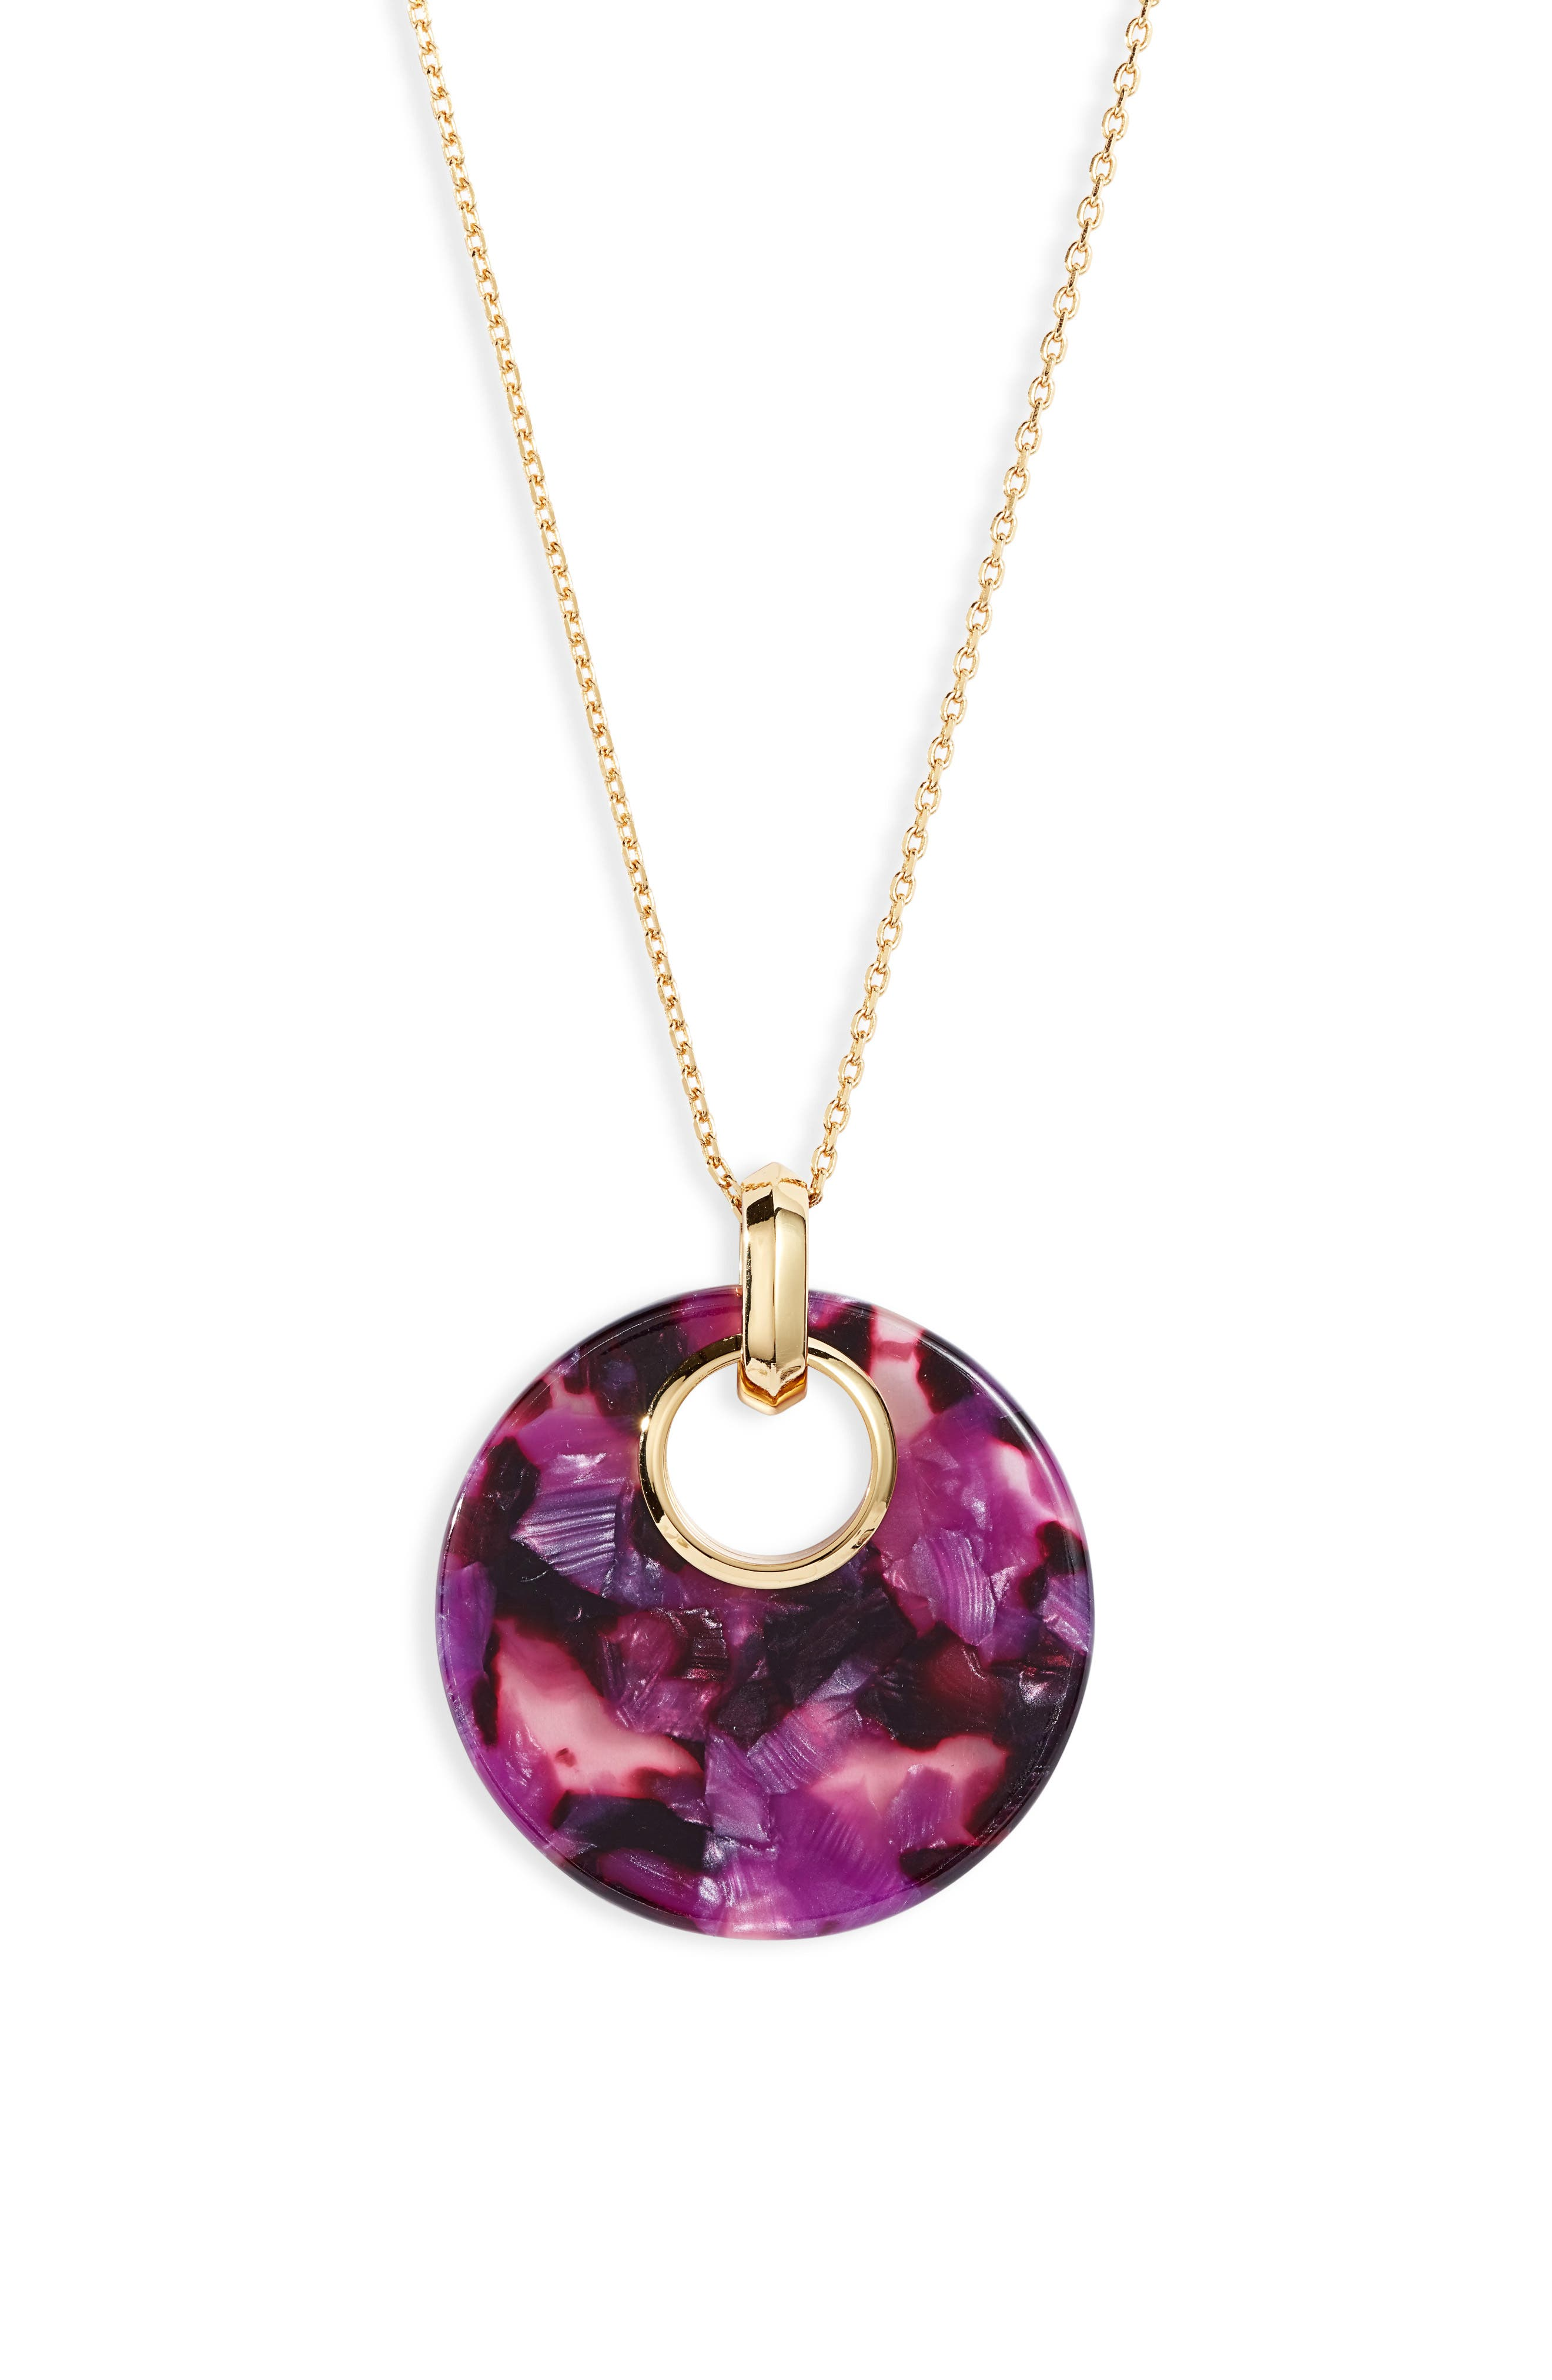 Image of kate spade new york smal pendant necklace